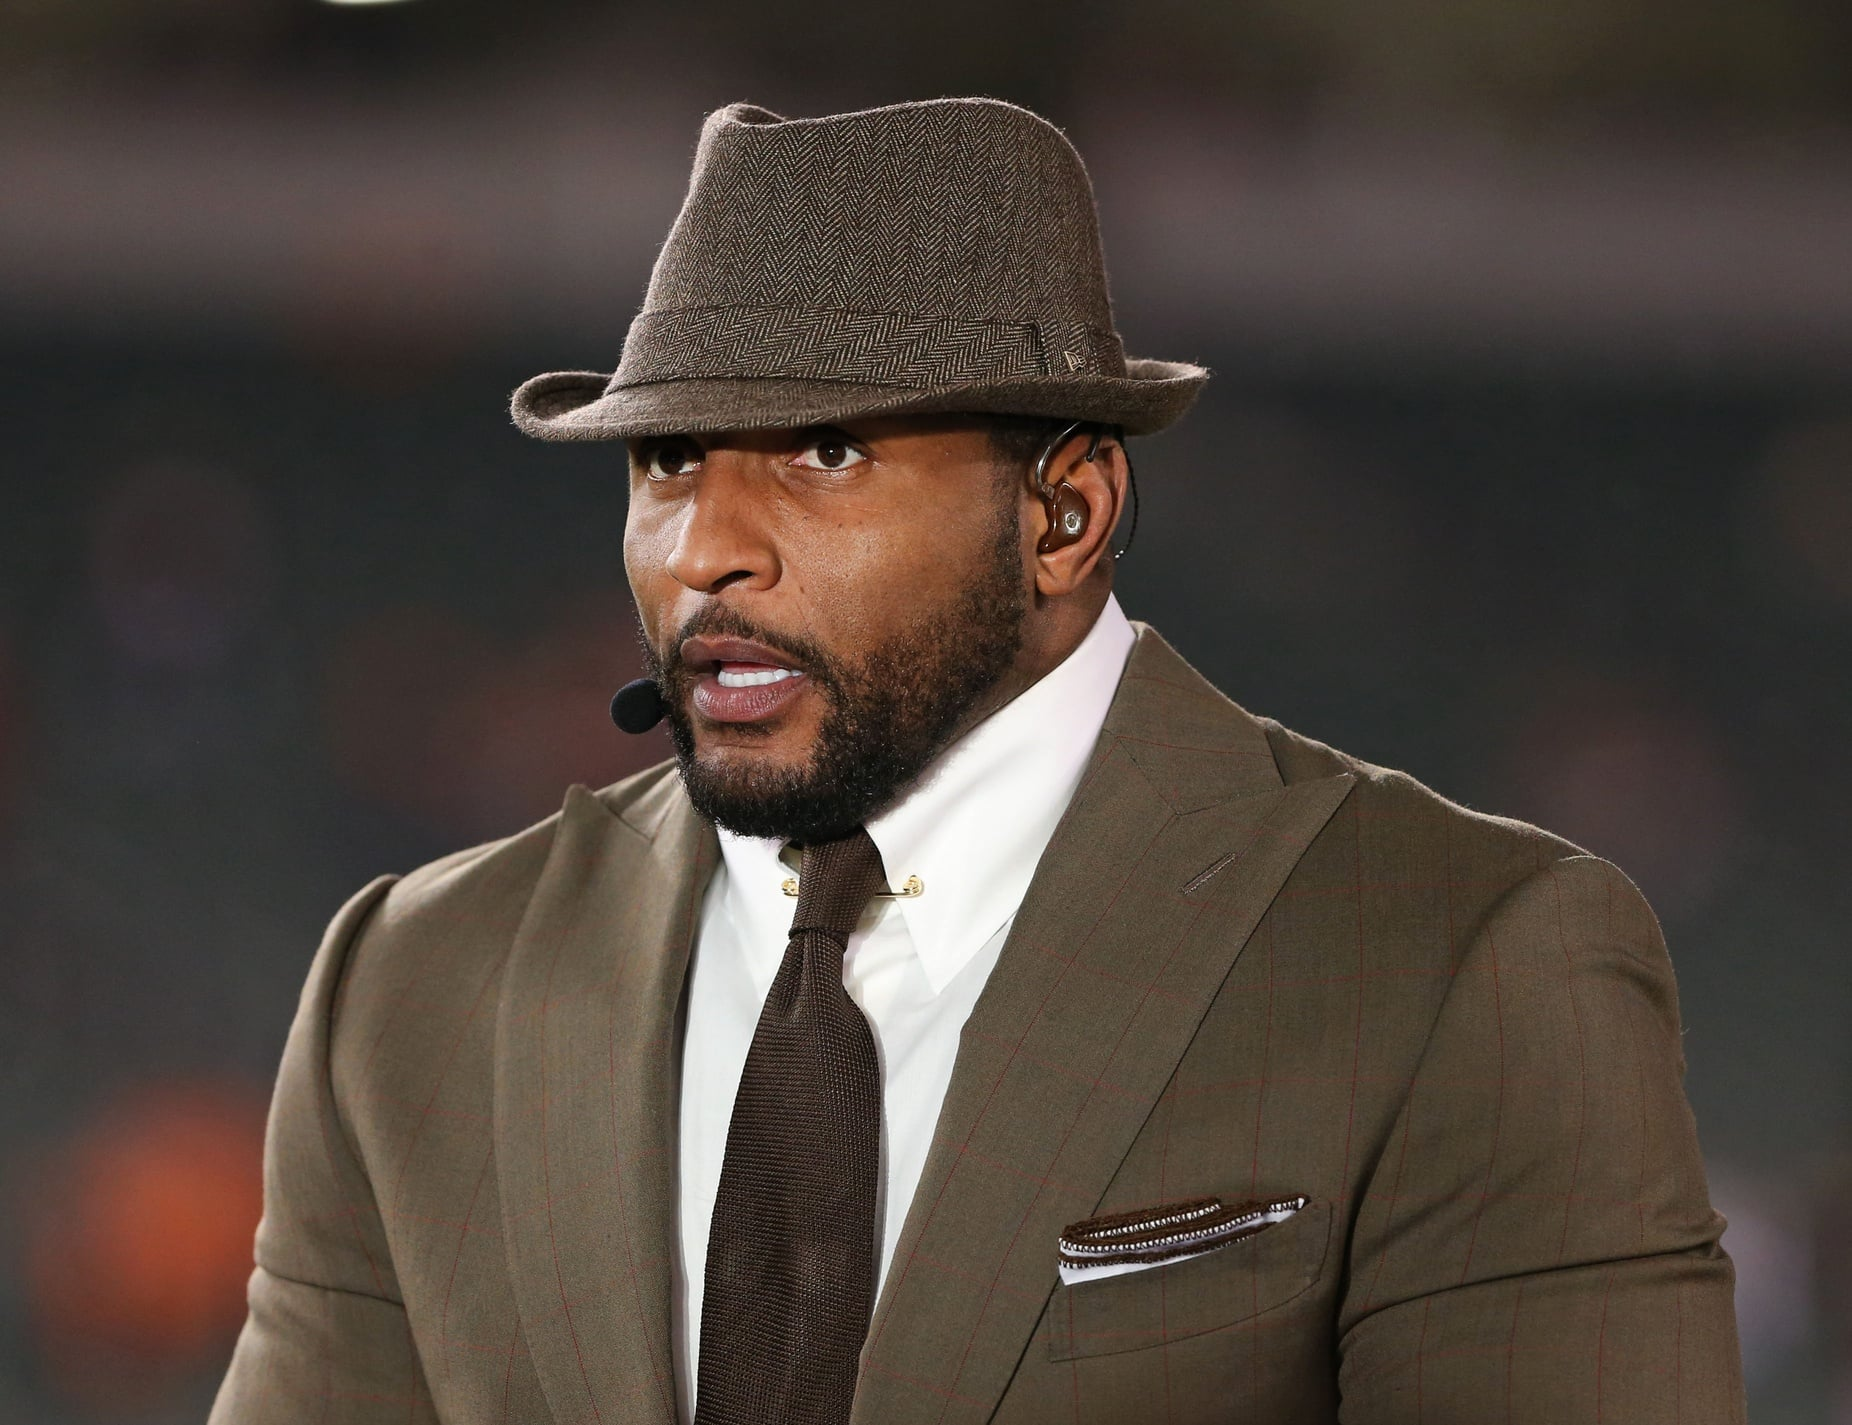 Nov 16, 2015; Cincinnati, OH, USA; ESPN broadcaster Ray Lewis on the Monday Night Football Set at Paul Brown Stadium. The Texans won 10-6. Mandatory Credit: Aaron Doster-USA TODAY Sports